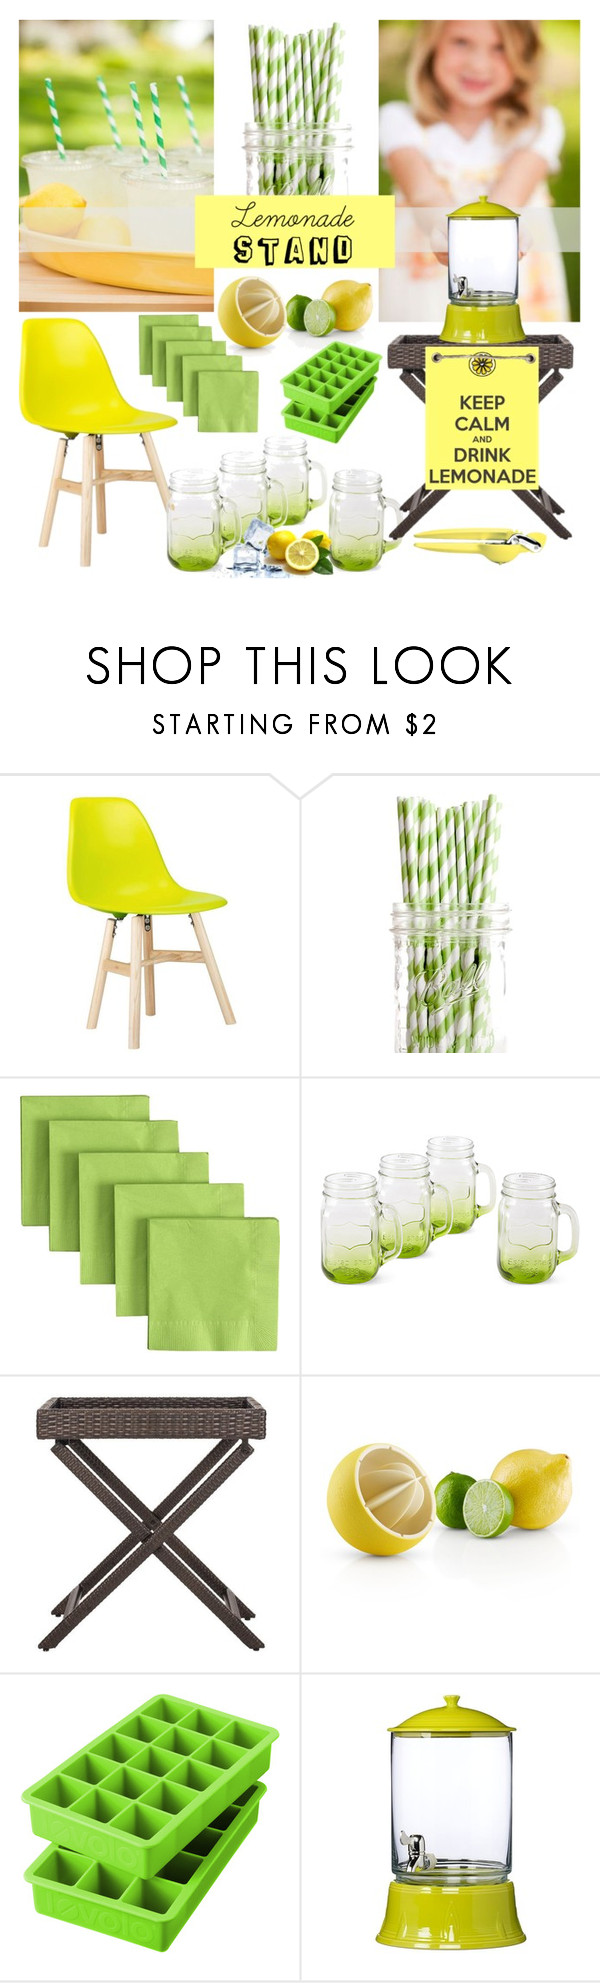 """""""Pucker Up: Lemonade Stand"""" by bklana ❤ liked on Polyvore featuring interior, interiors, interior design, home, home decor, interior decorating, Dot & Bo, Crate and Barrel, Eva Solo and Tovolo"""